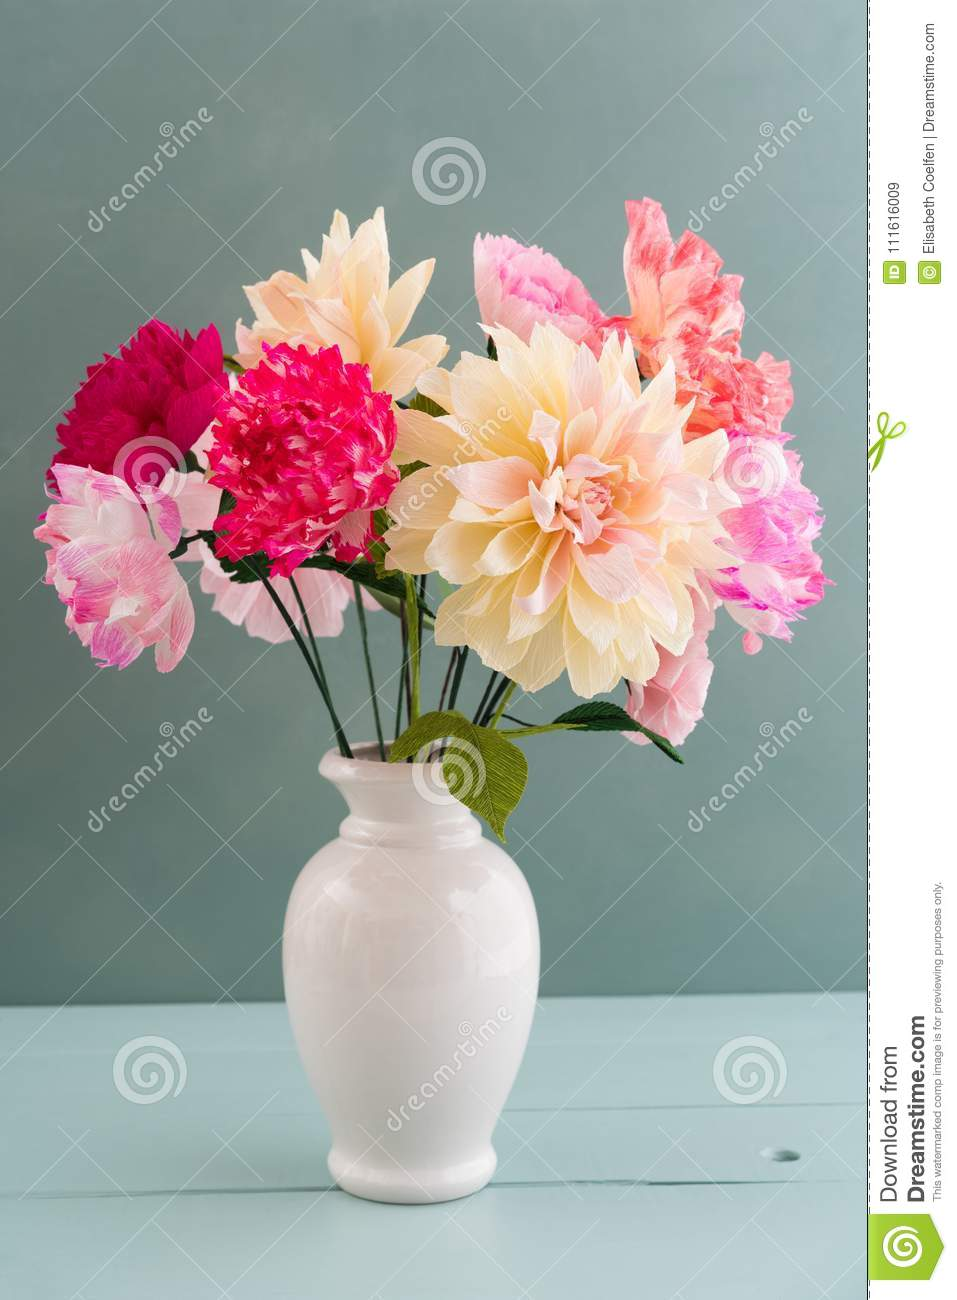 Crepe Paper Flower Bouquet Stock Image Image Of Decoration 111616009